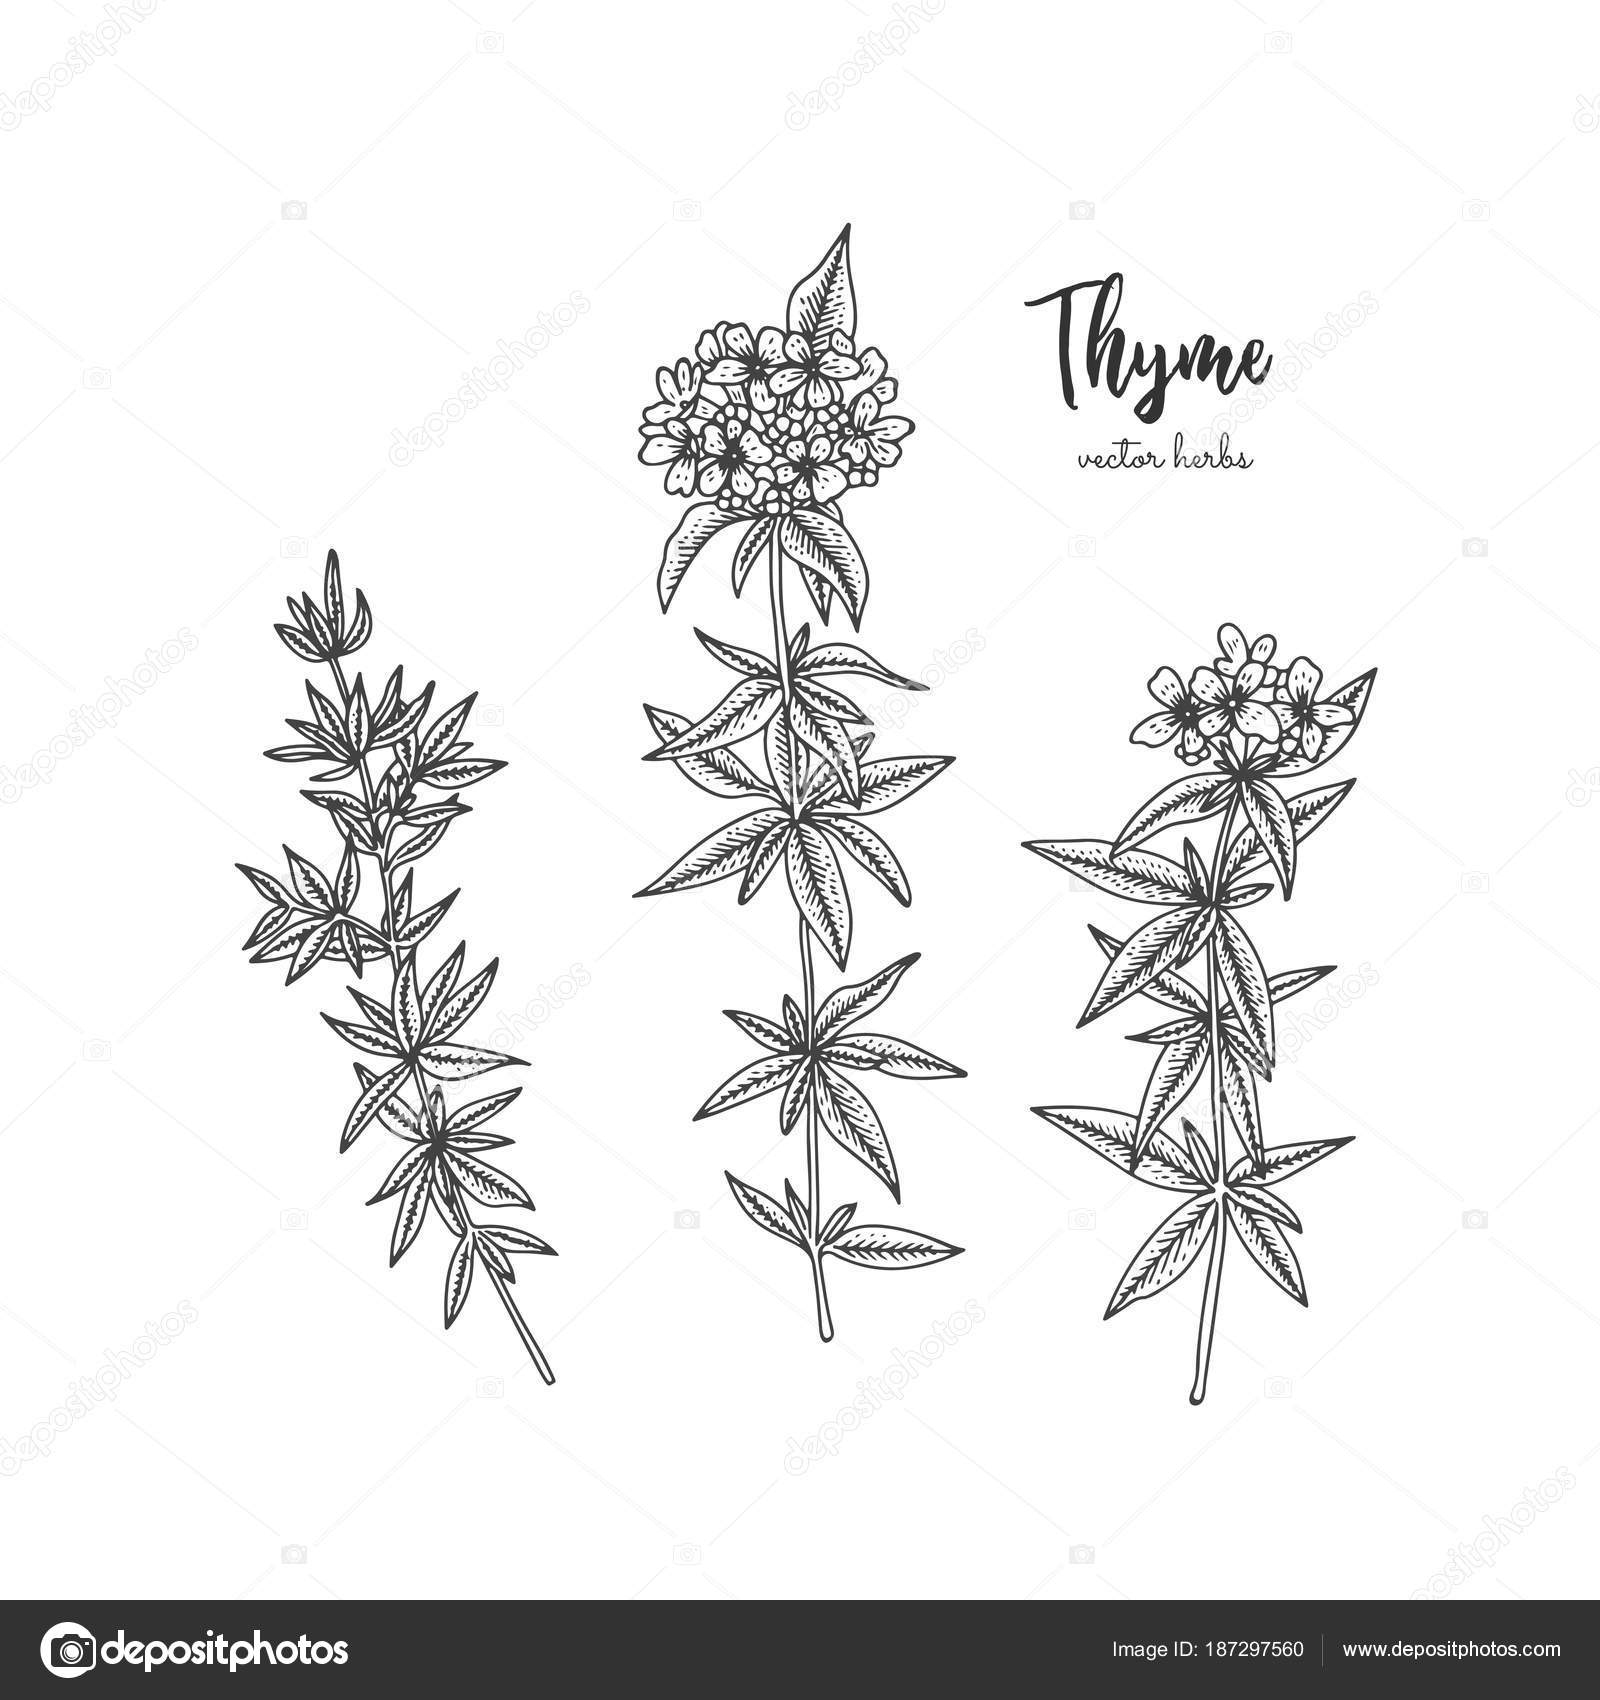 Vintage Botanical Engraving Illustration Of Thyme Beauty And Spa